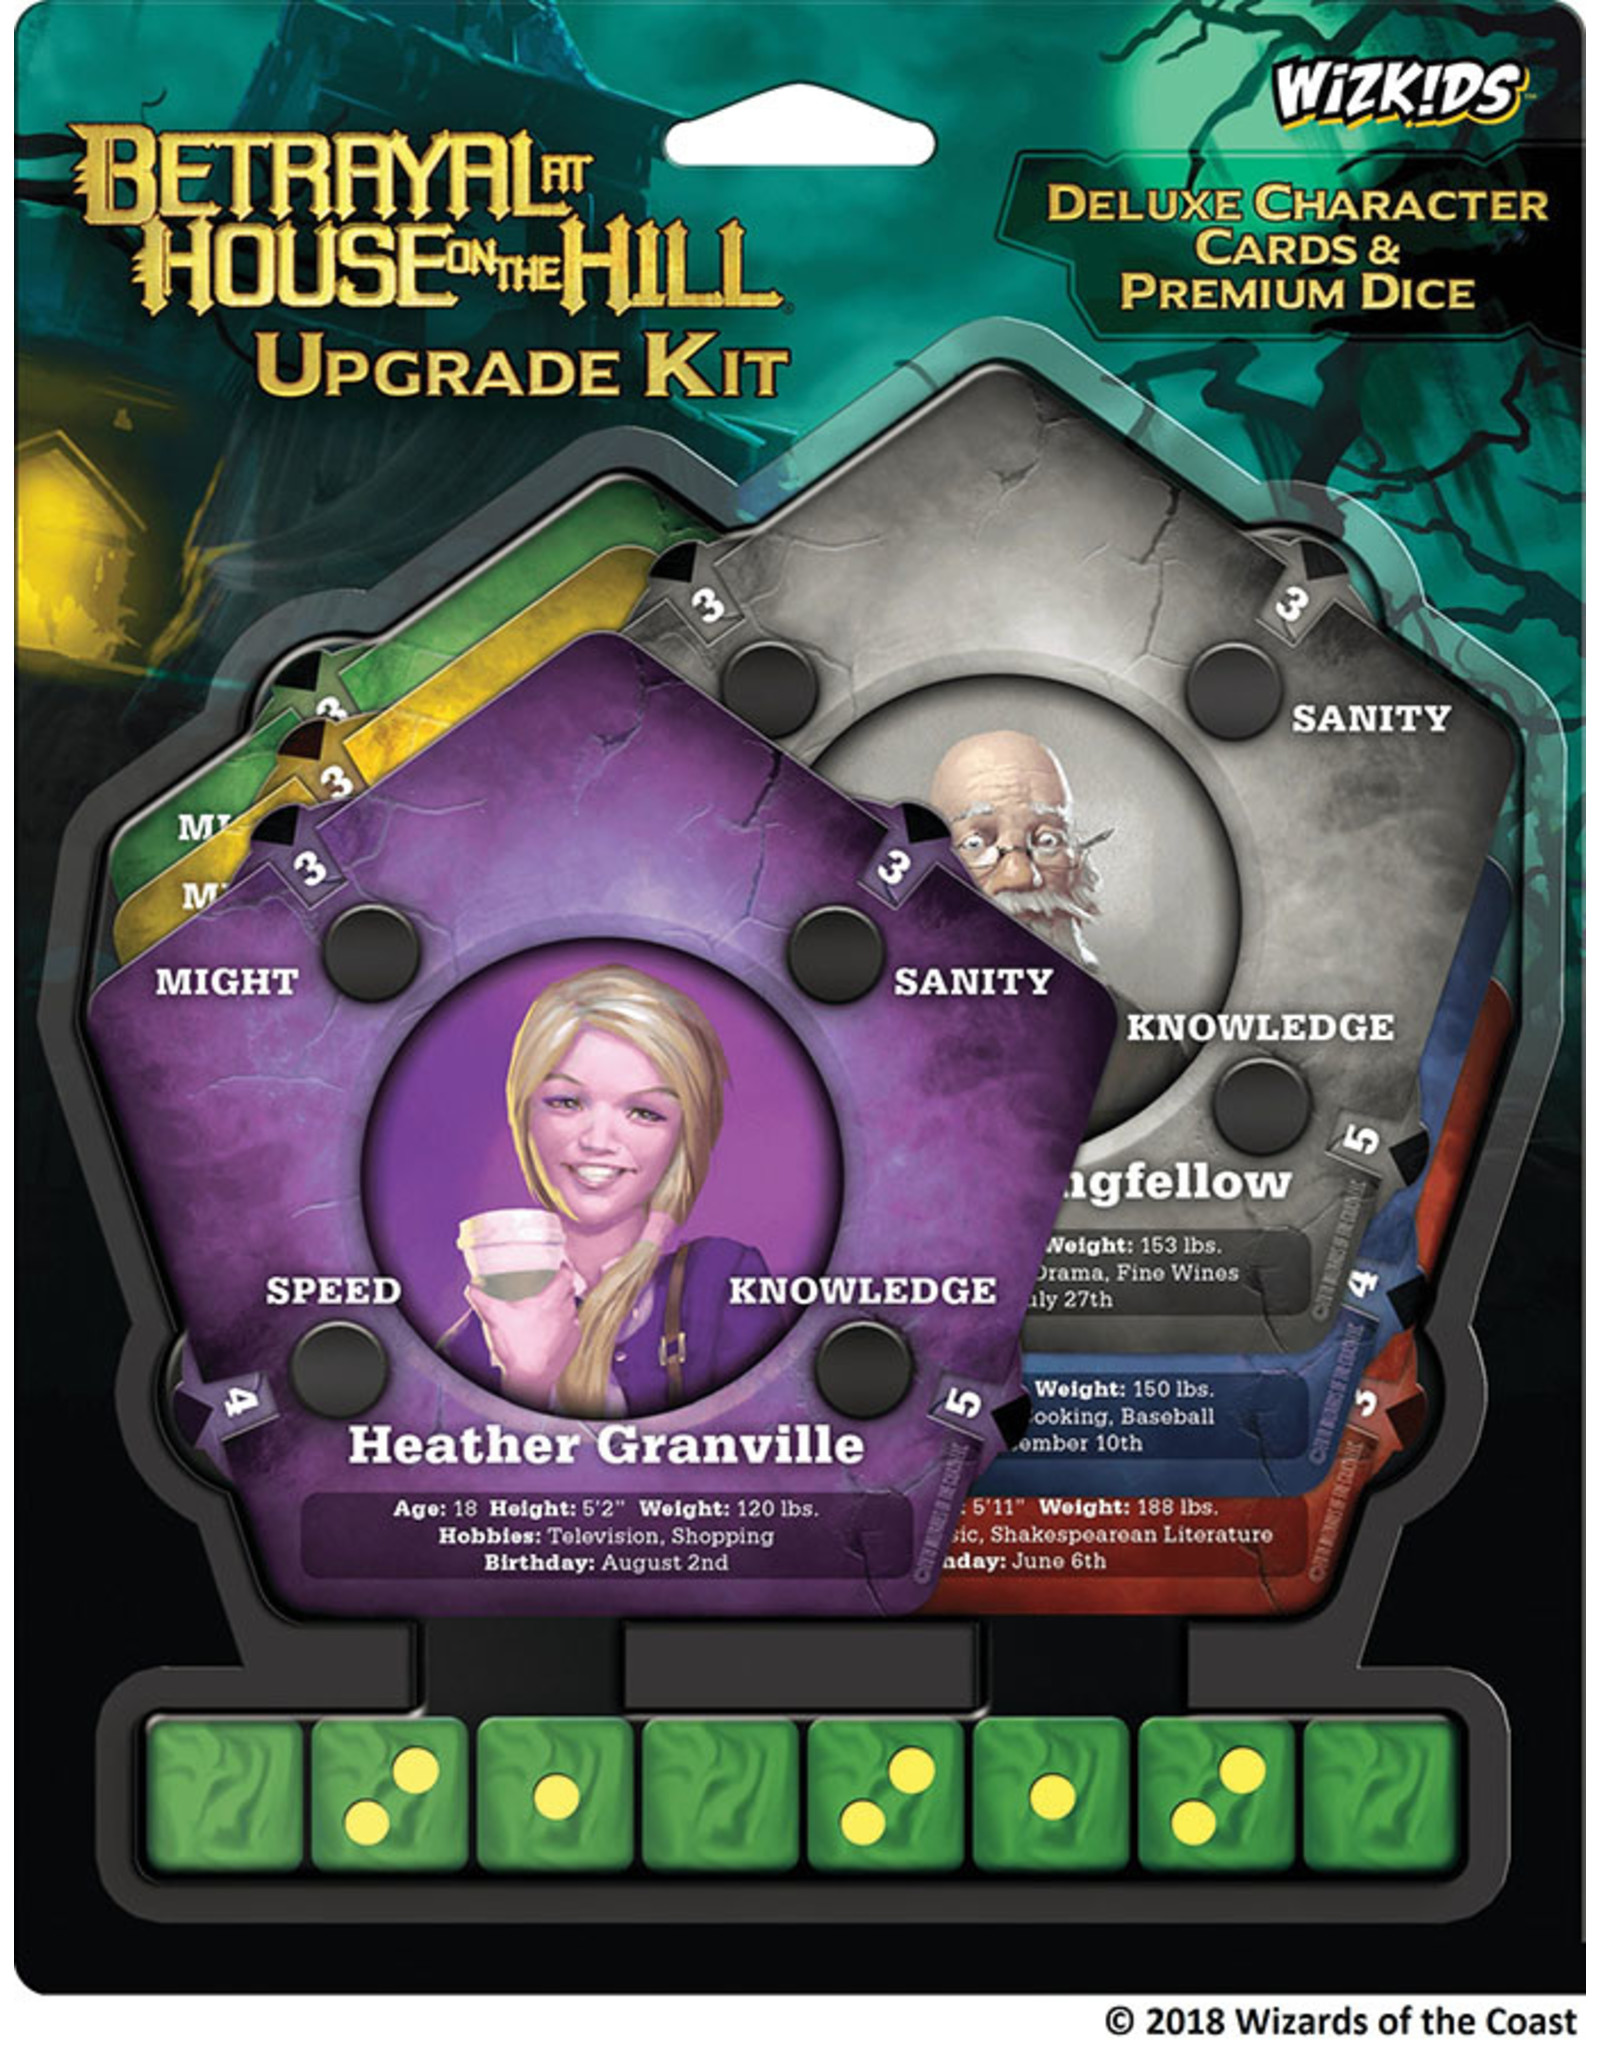 WizKids Betrayal at House on the Hill: Upgrade Kit